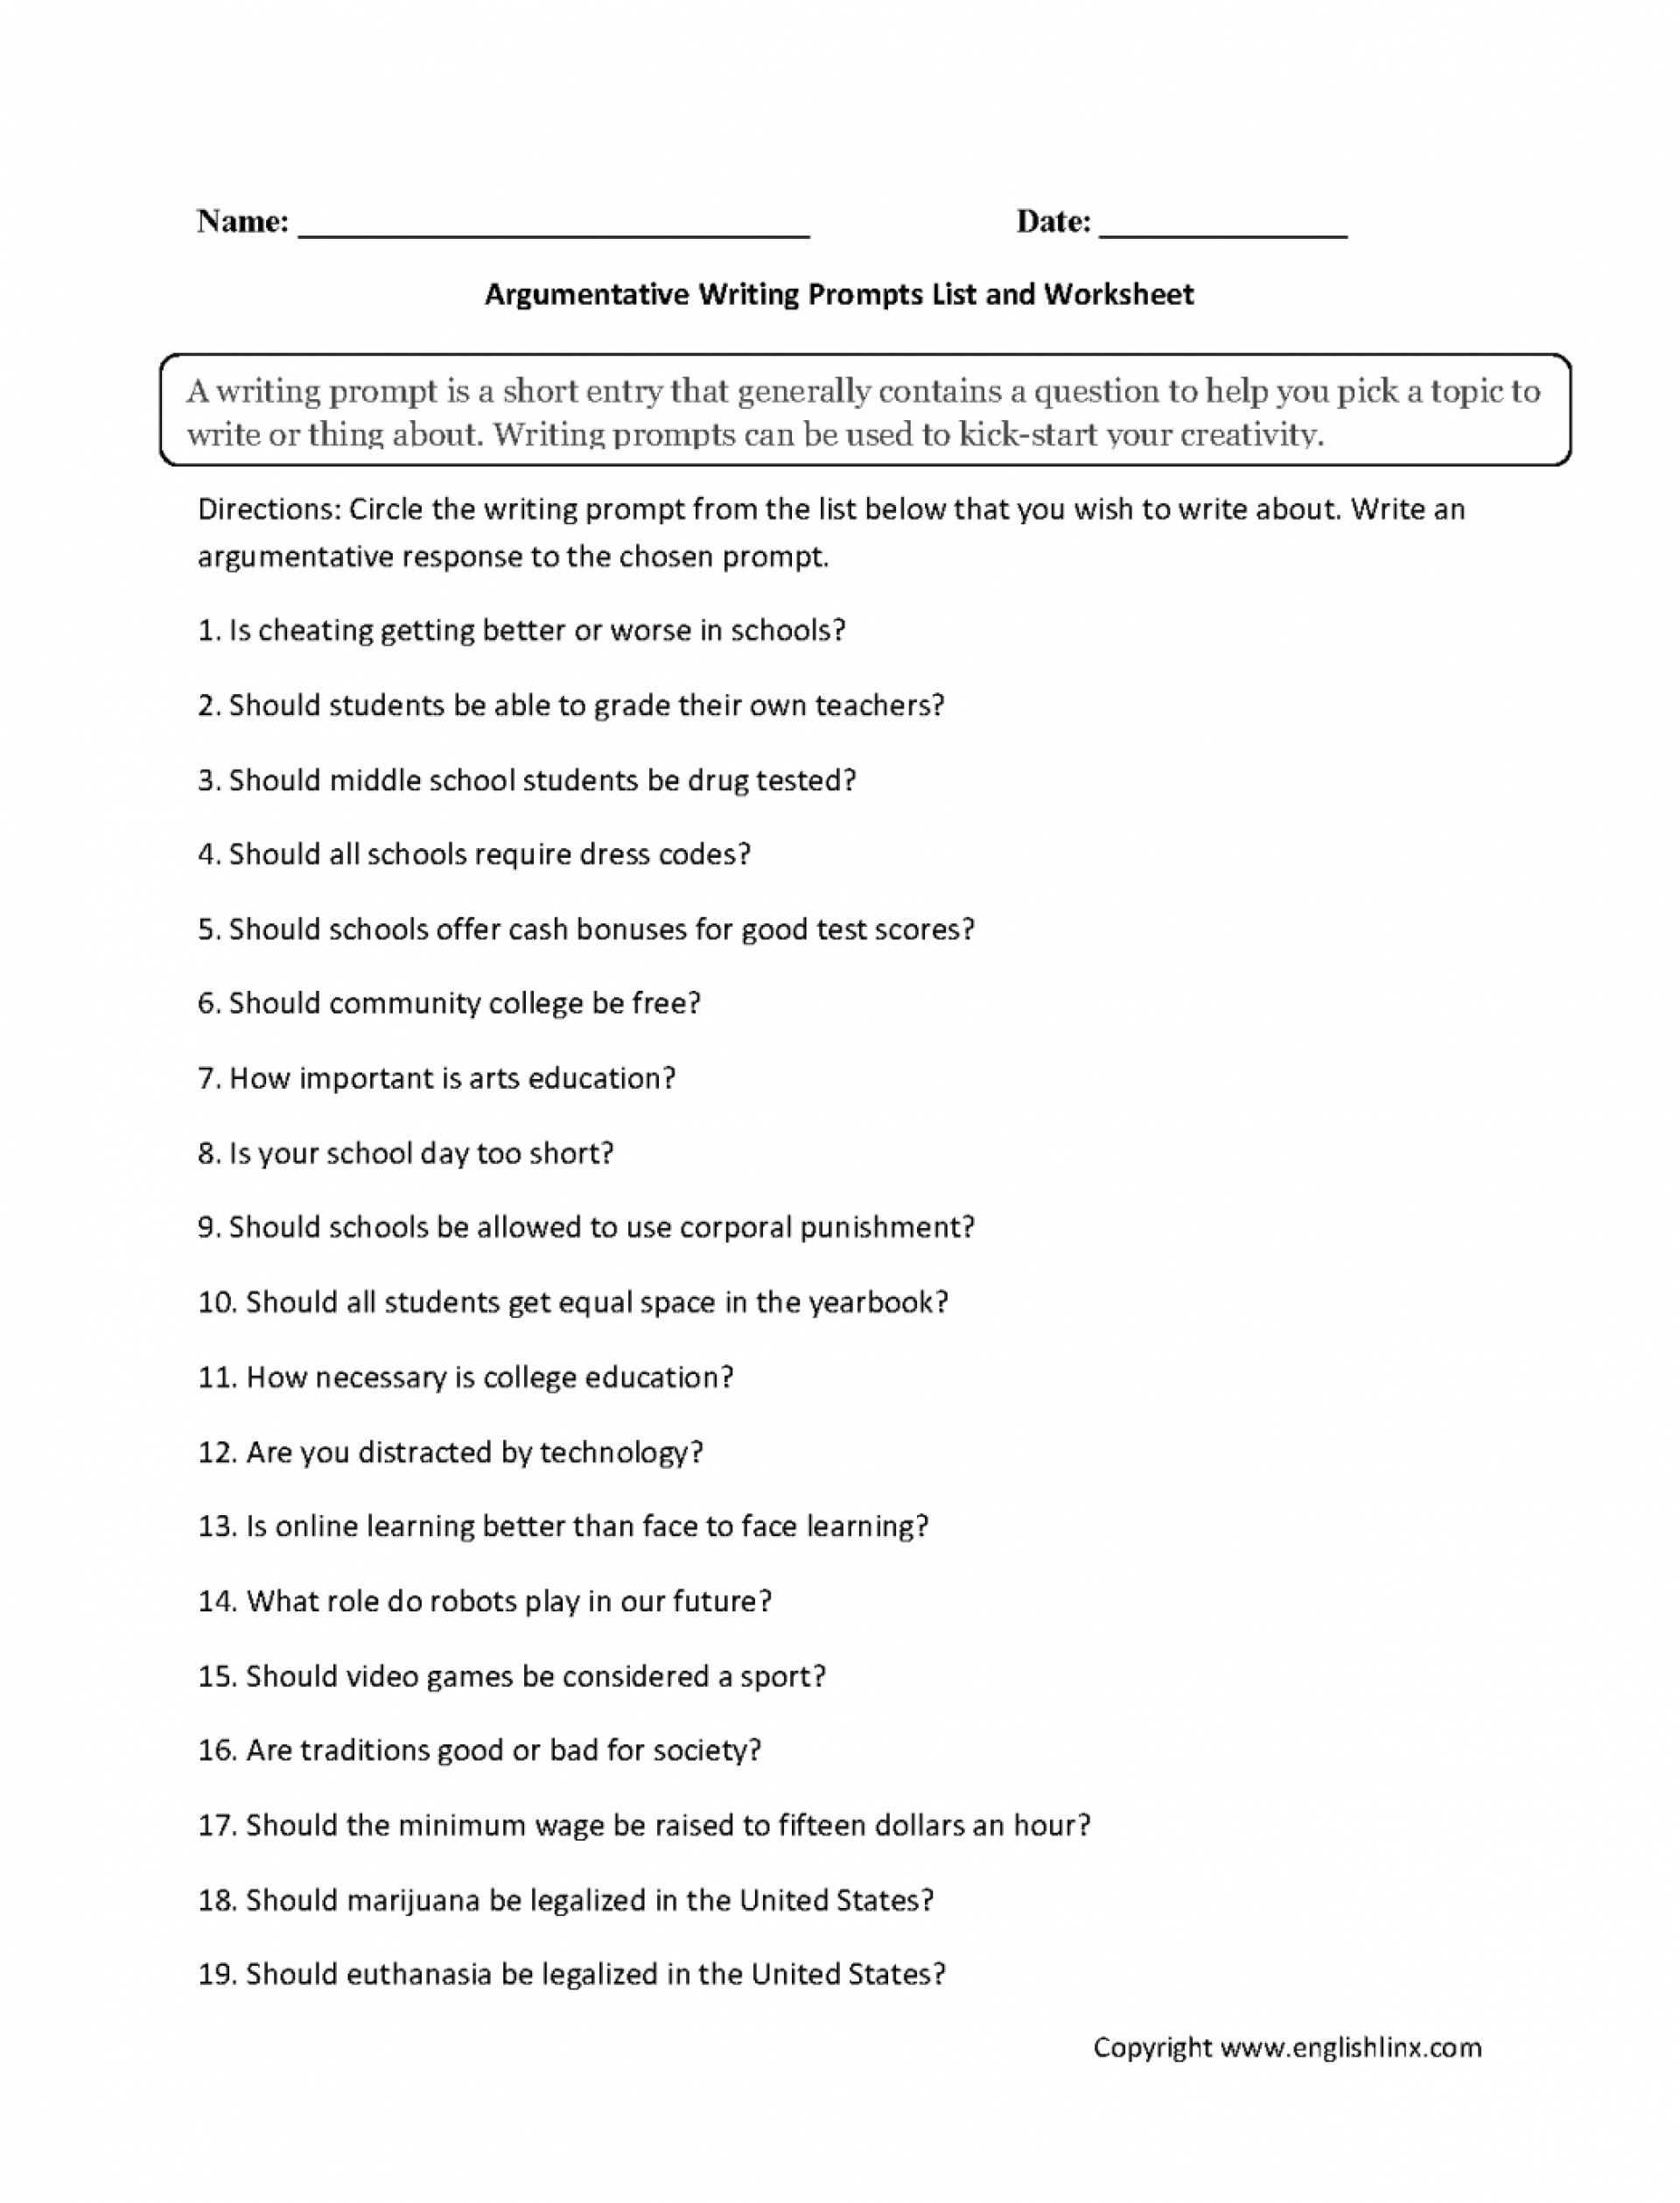 004 argument essay ideas example prompts goal blockety co